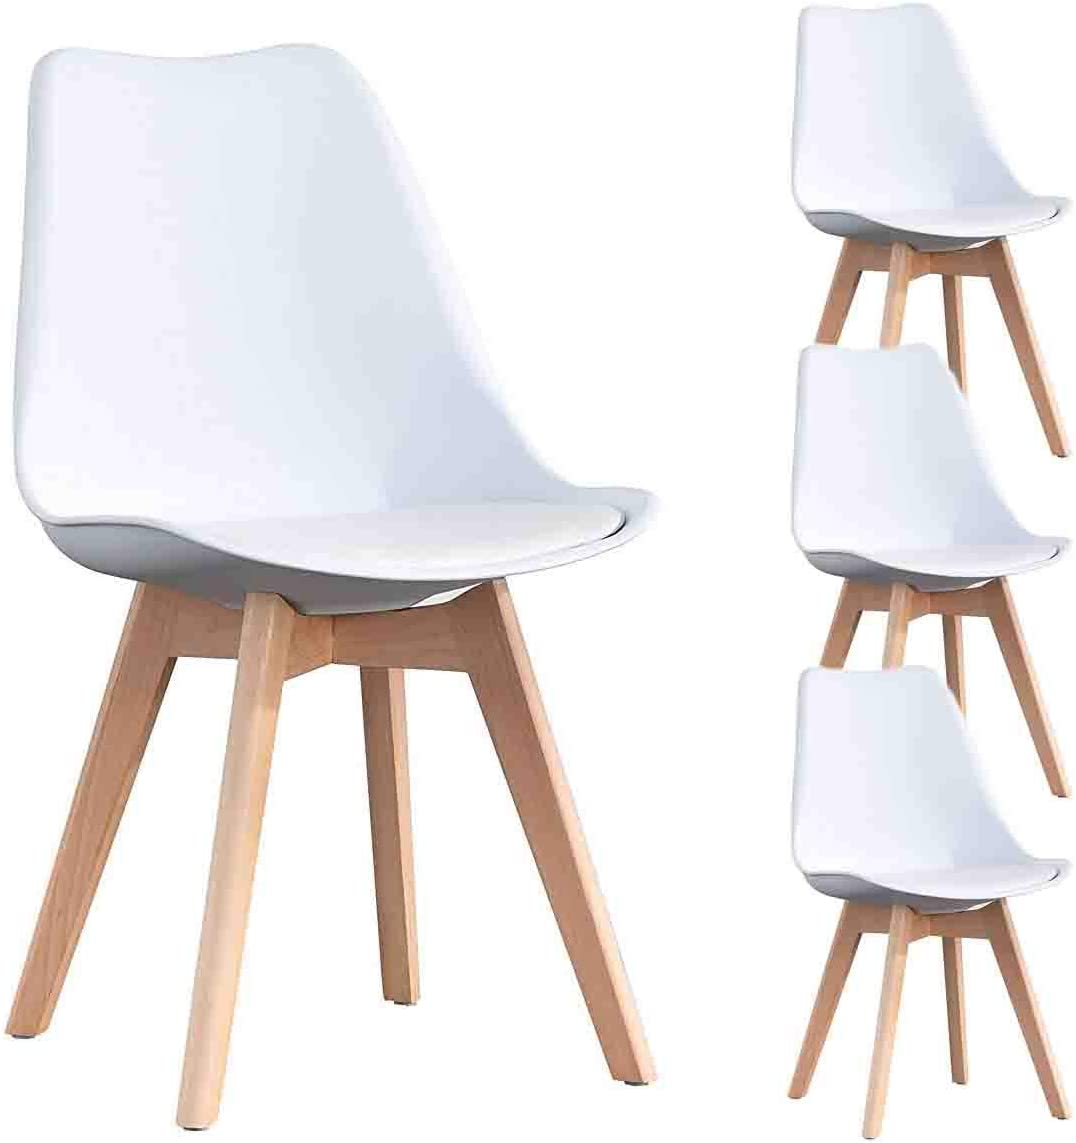 N A to MUEBLES HOME Dining Chairs Set of 4 Tulip Modern Assembled Kitchen Chairs Shell Lounge Chair with Wooden Legs and Backrest Soft Cushion for Dining, Bedroom, Living Room Side Chairs, White